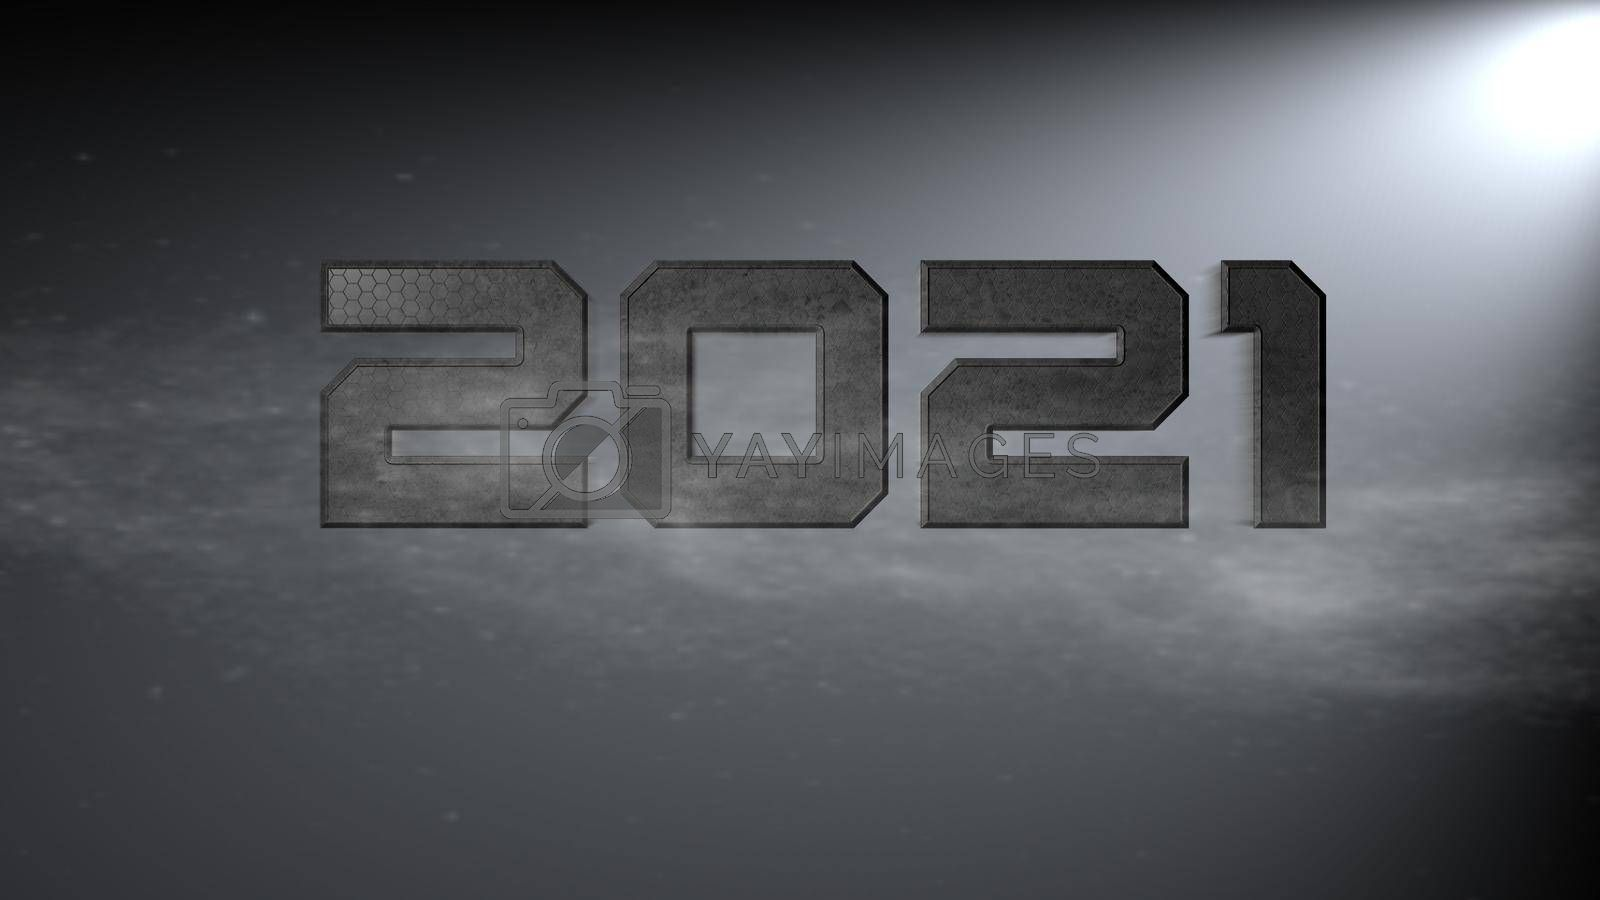 It depicts a digitally generated image of 2021 number on light gray background